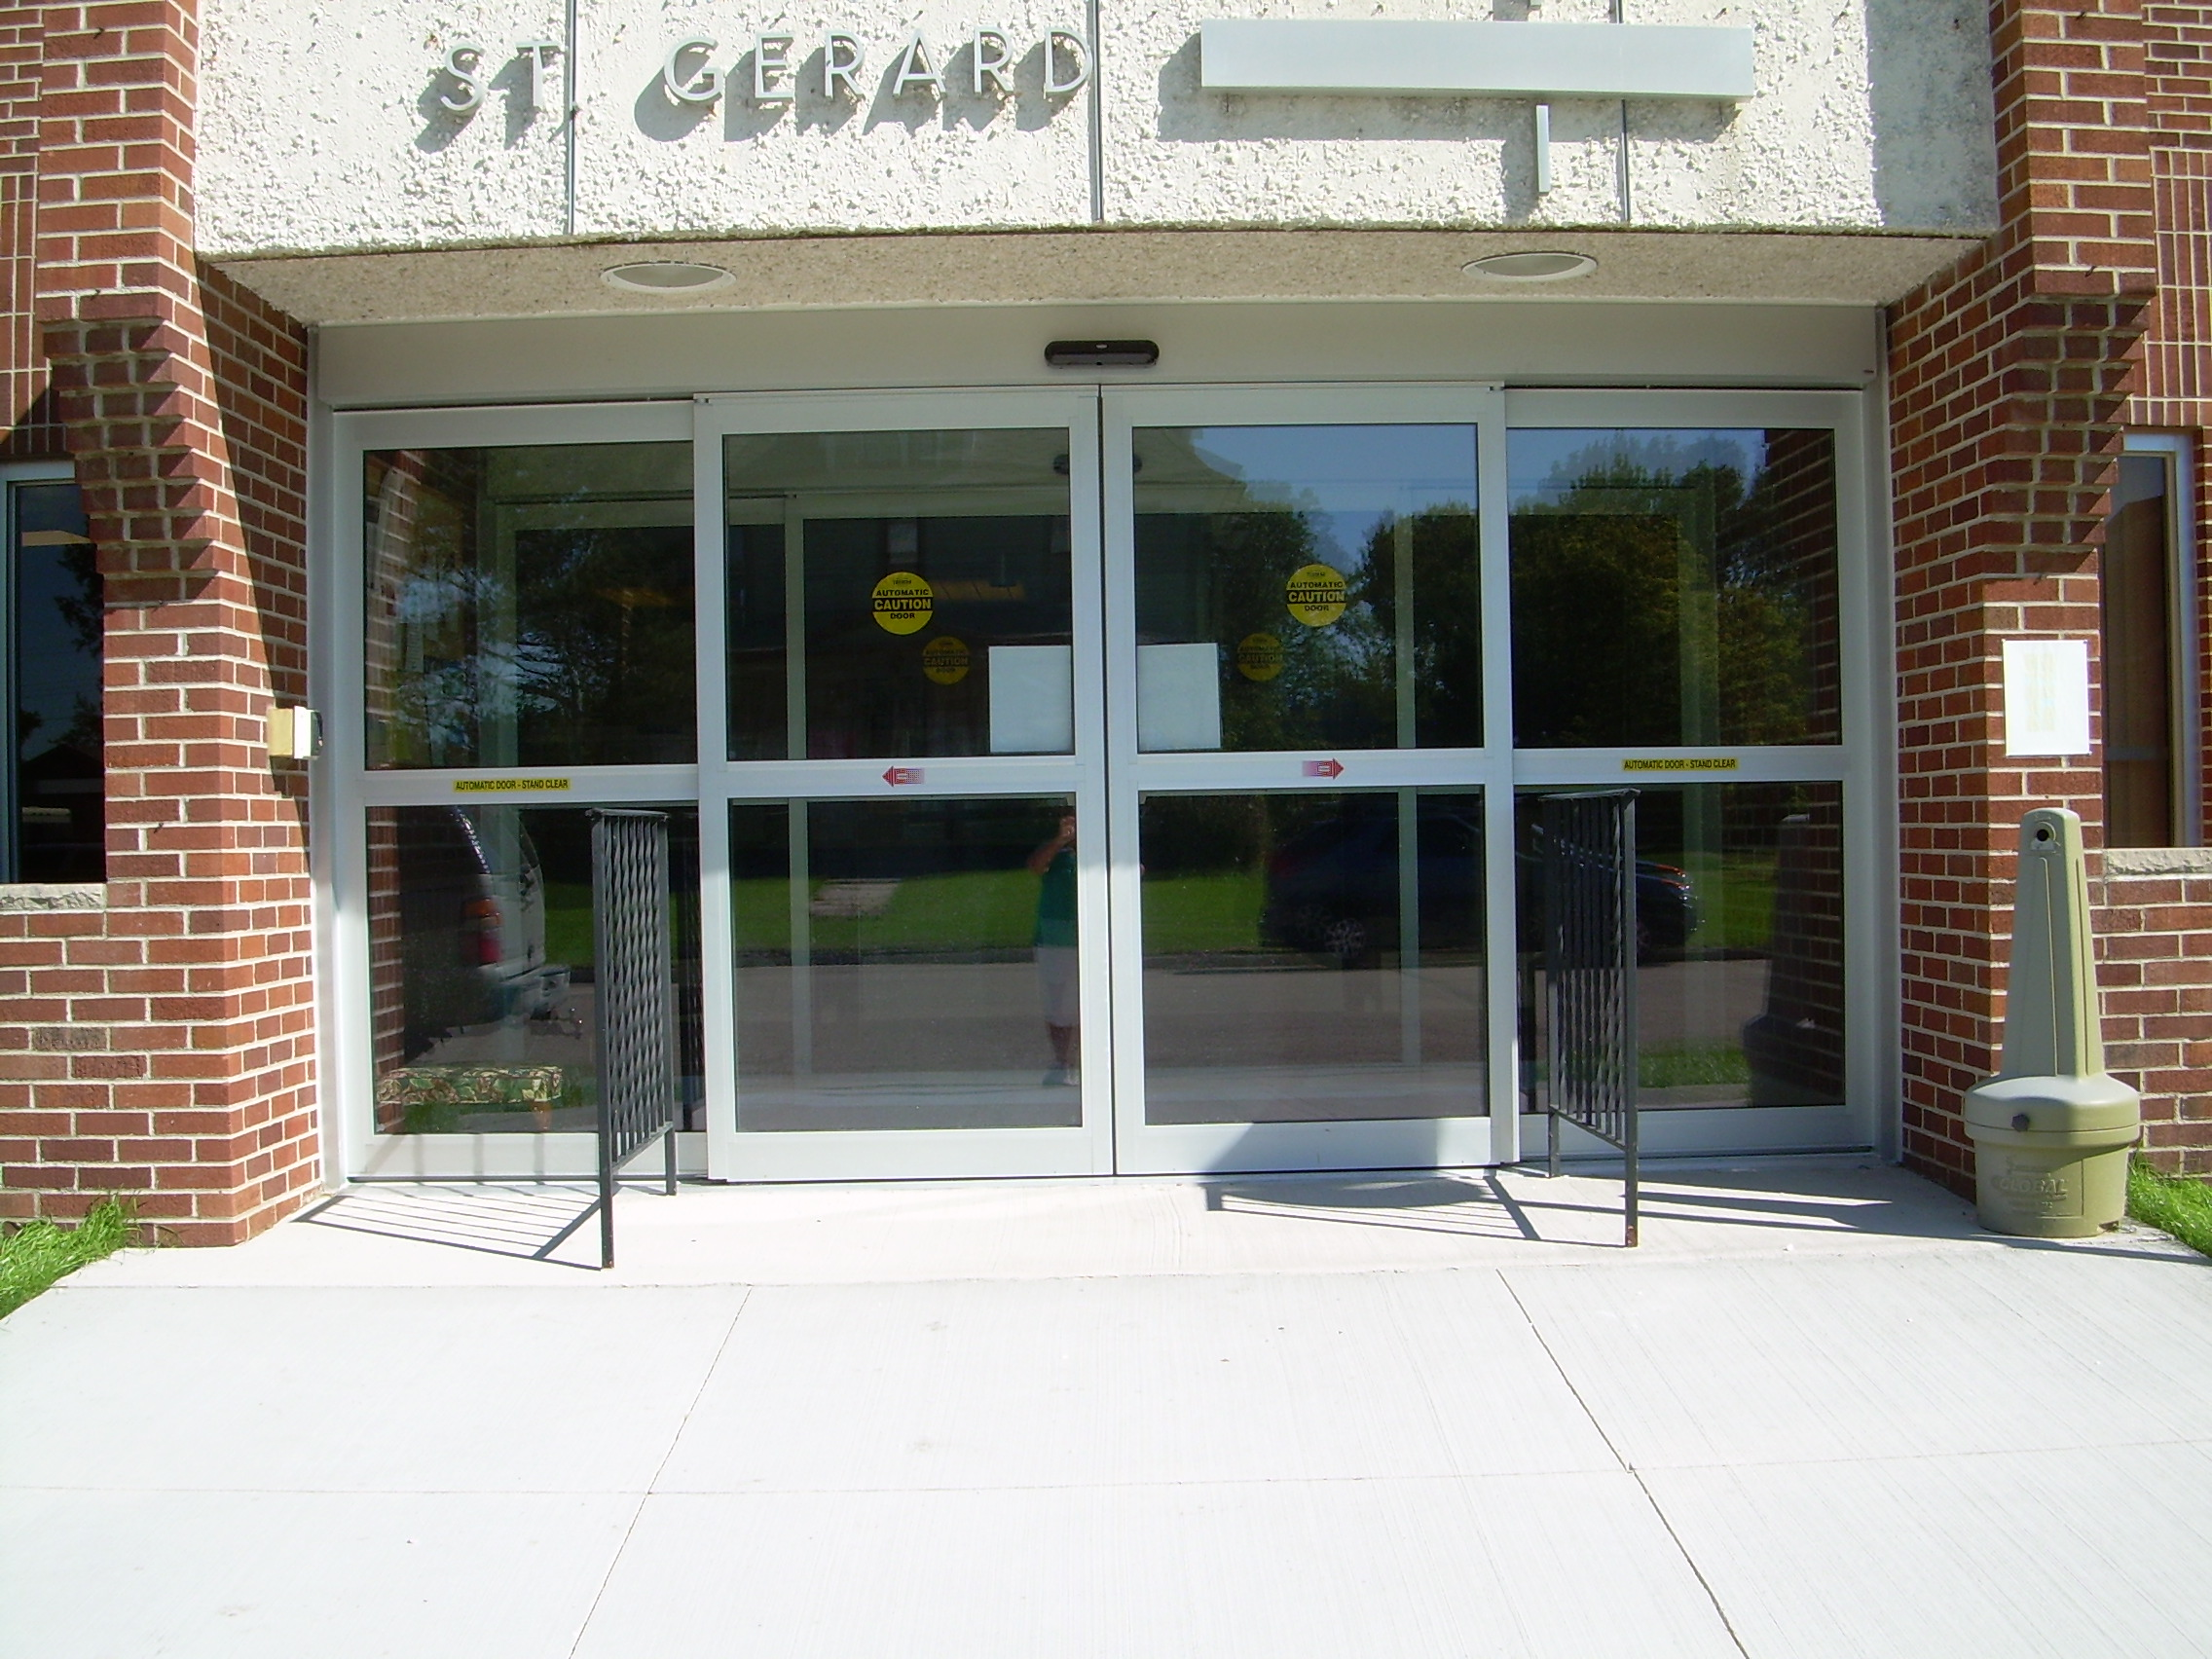 St. Gerard's Community Nursing Home